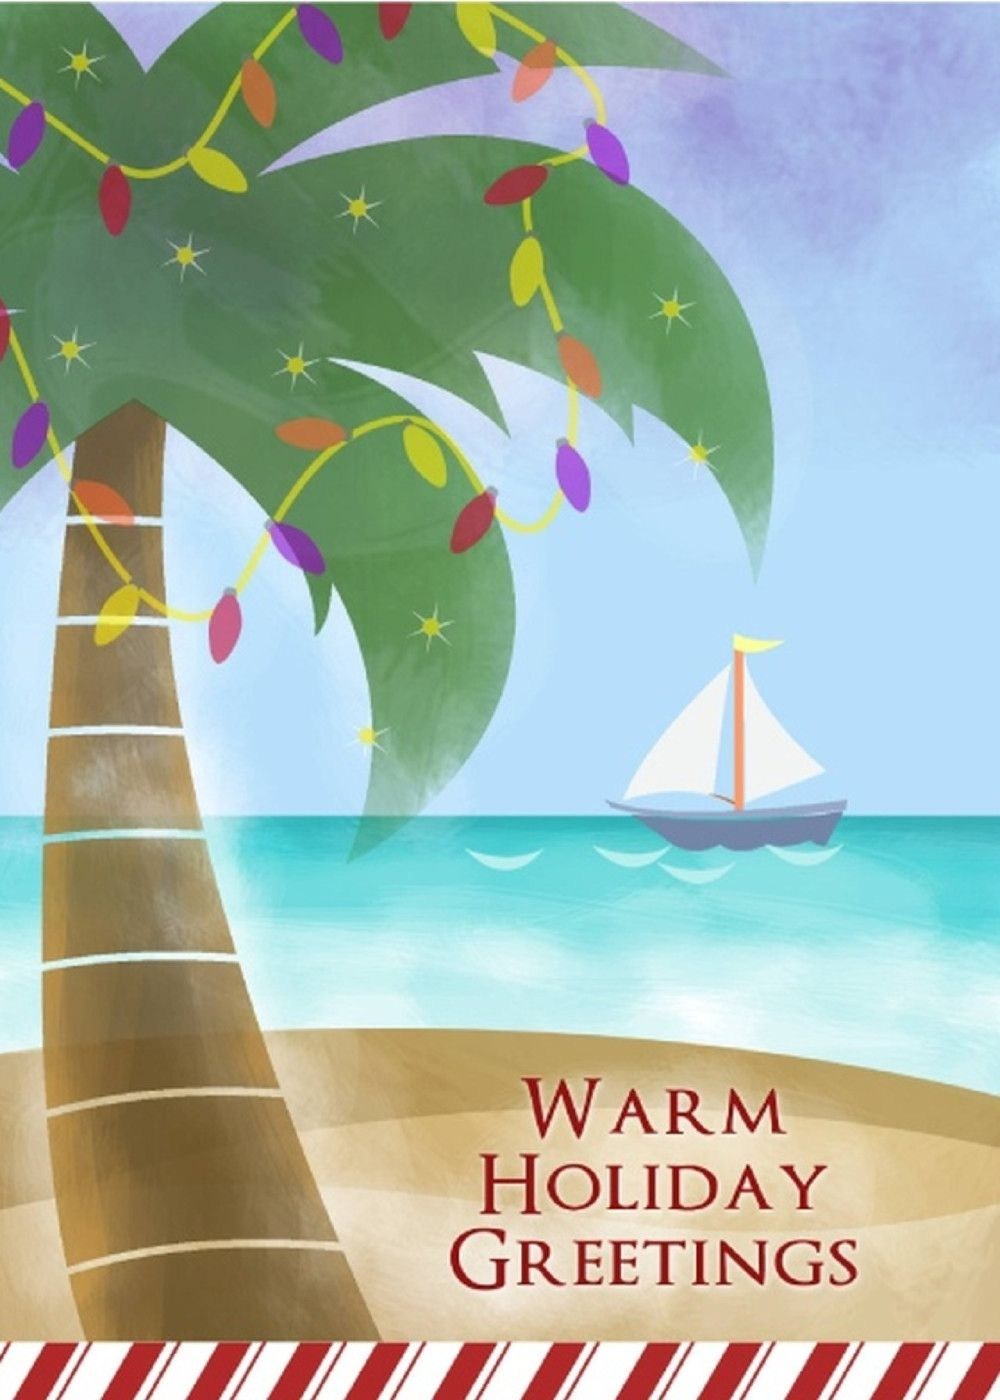 Warm Holiday Greetings Share This Card With Your Family And Friends